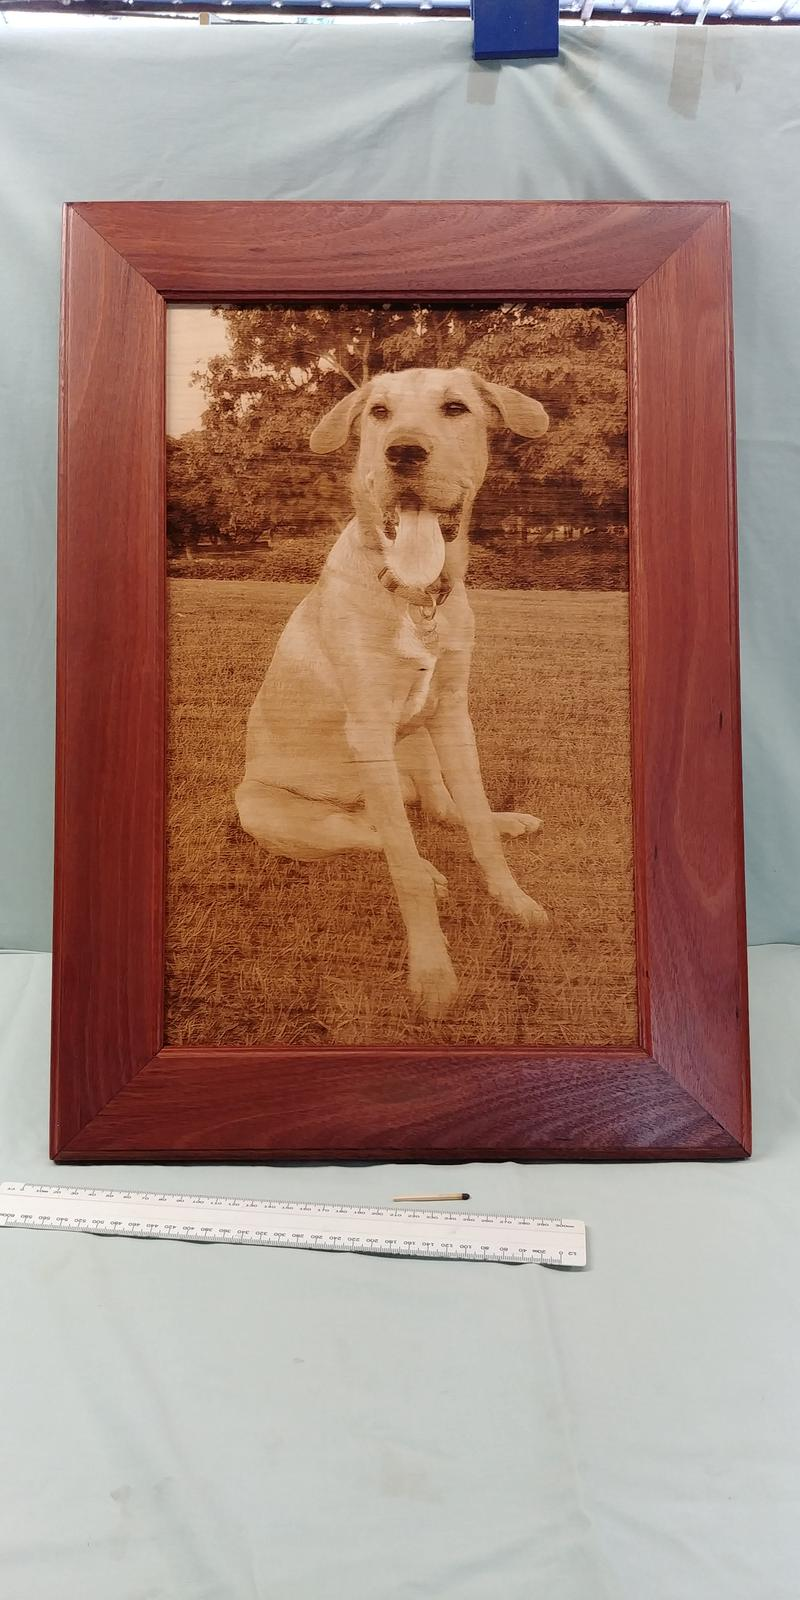 Charlie Boy with jarrah frame